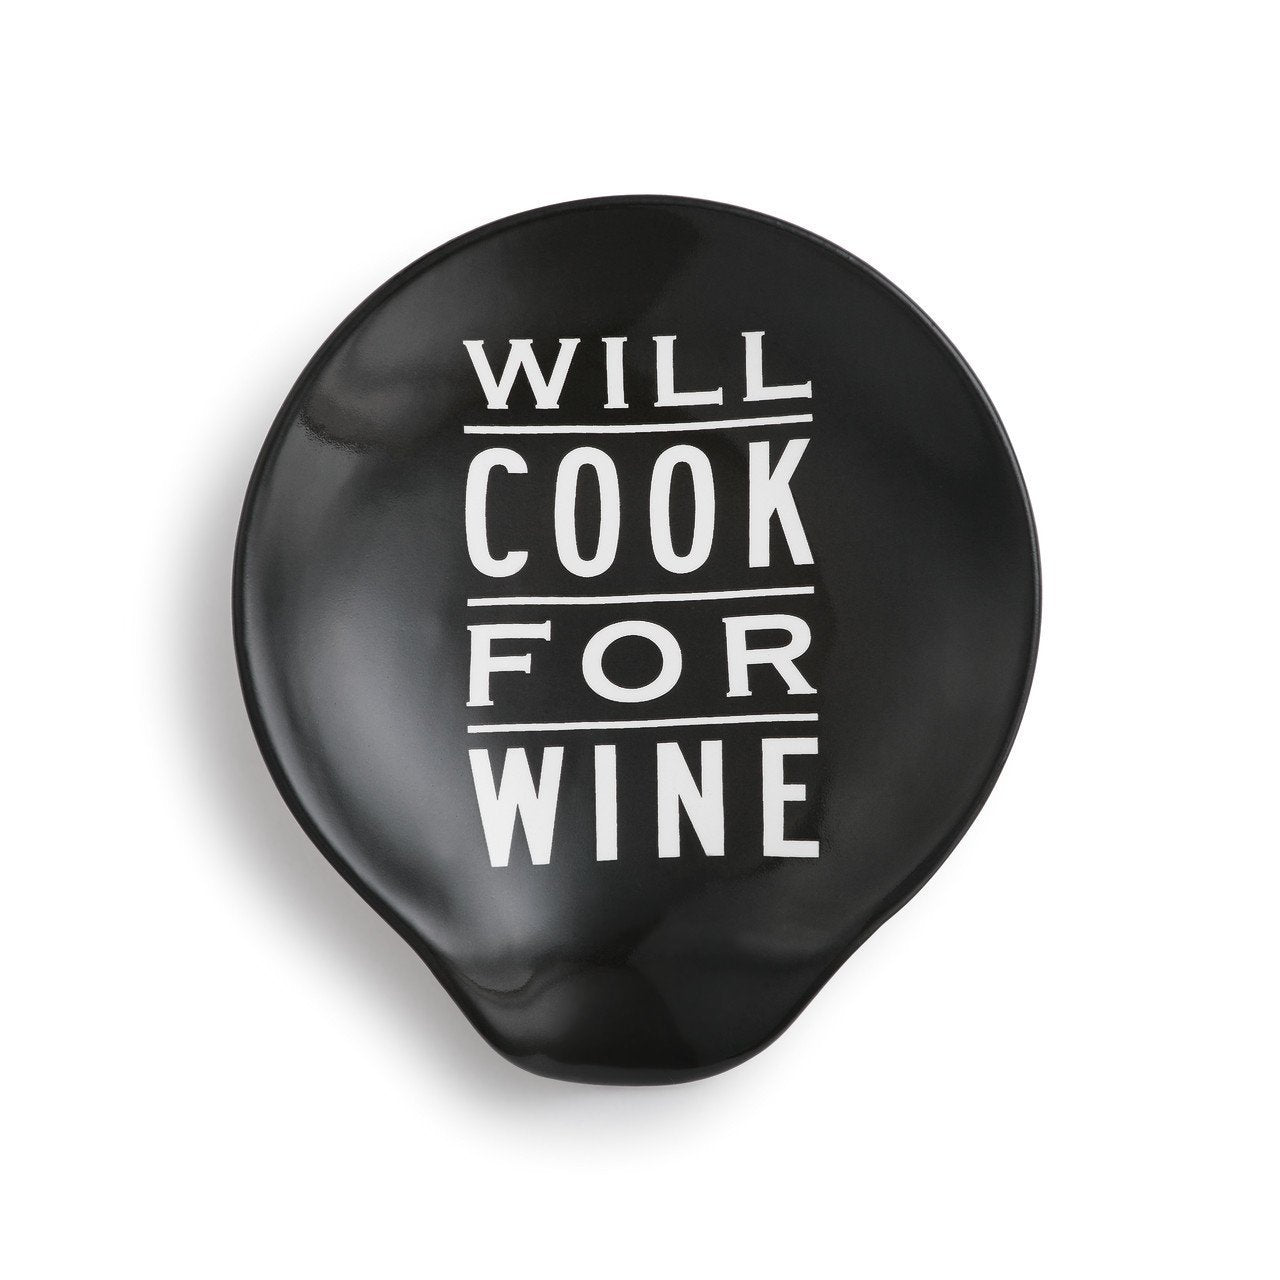 WILL COOK FOR WINE SPOON REST - Molly's! A Chic and Unique Boutique